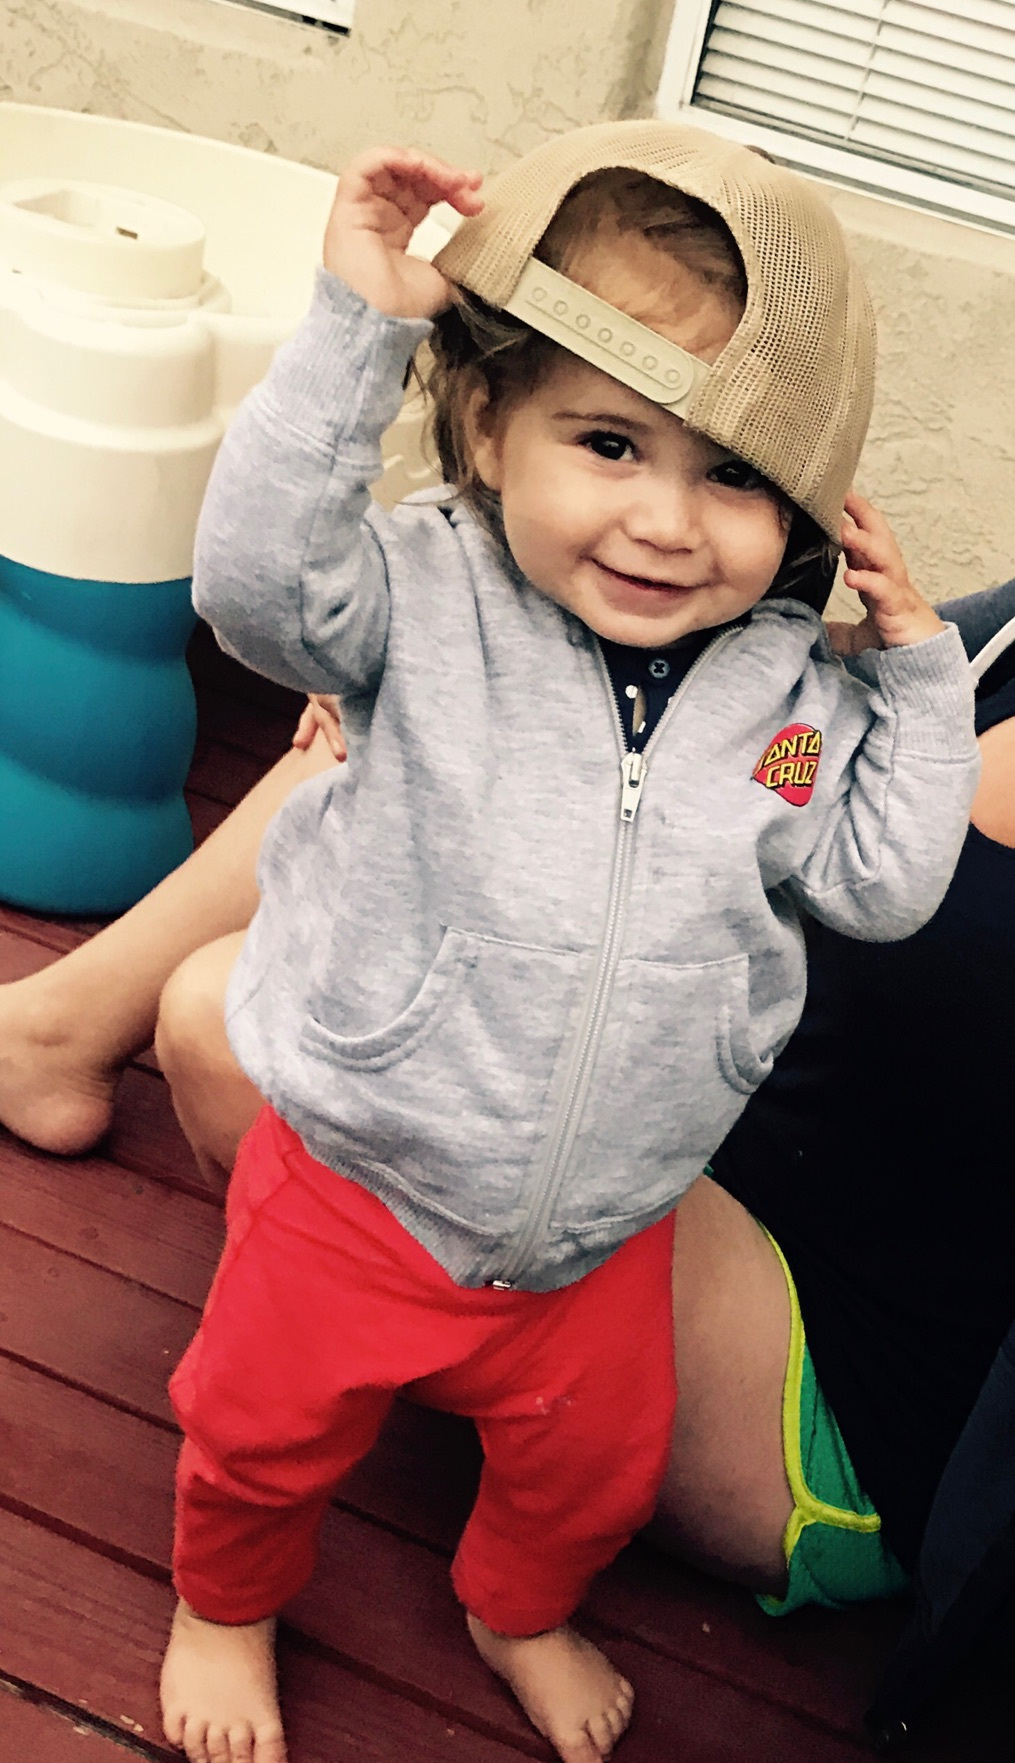 Lily, CBAB (CERTIFIED BADASS BABY) - How could I not include a picture of her?! My BIRTHFIT baby. She reminds me daily to love and cherish every moment!!